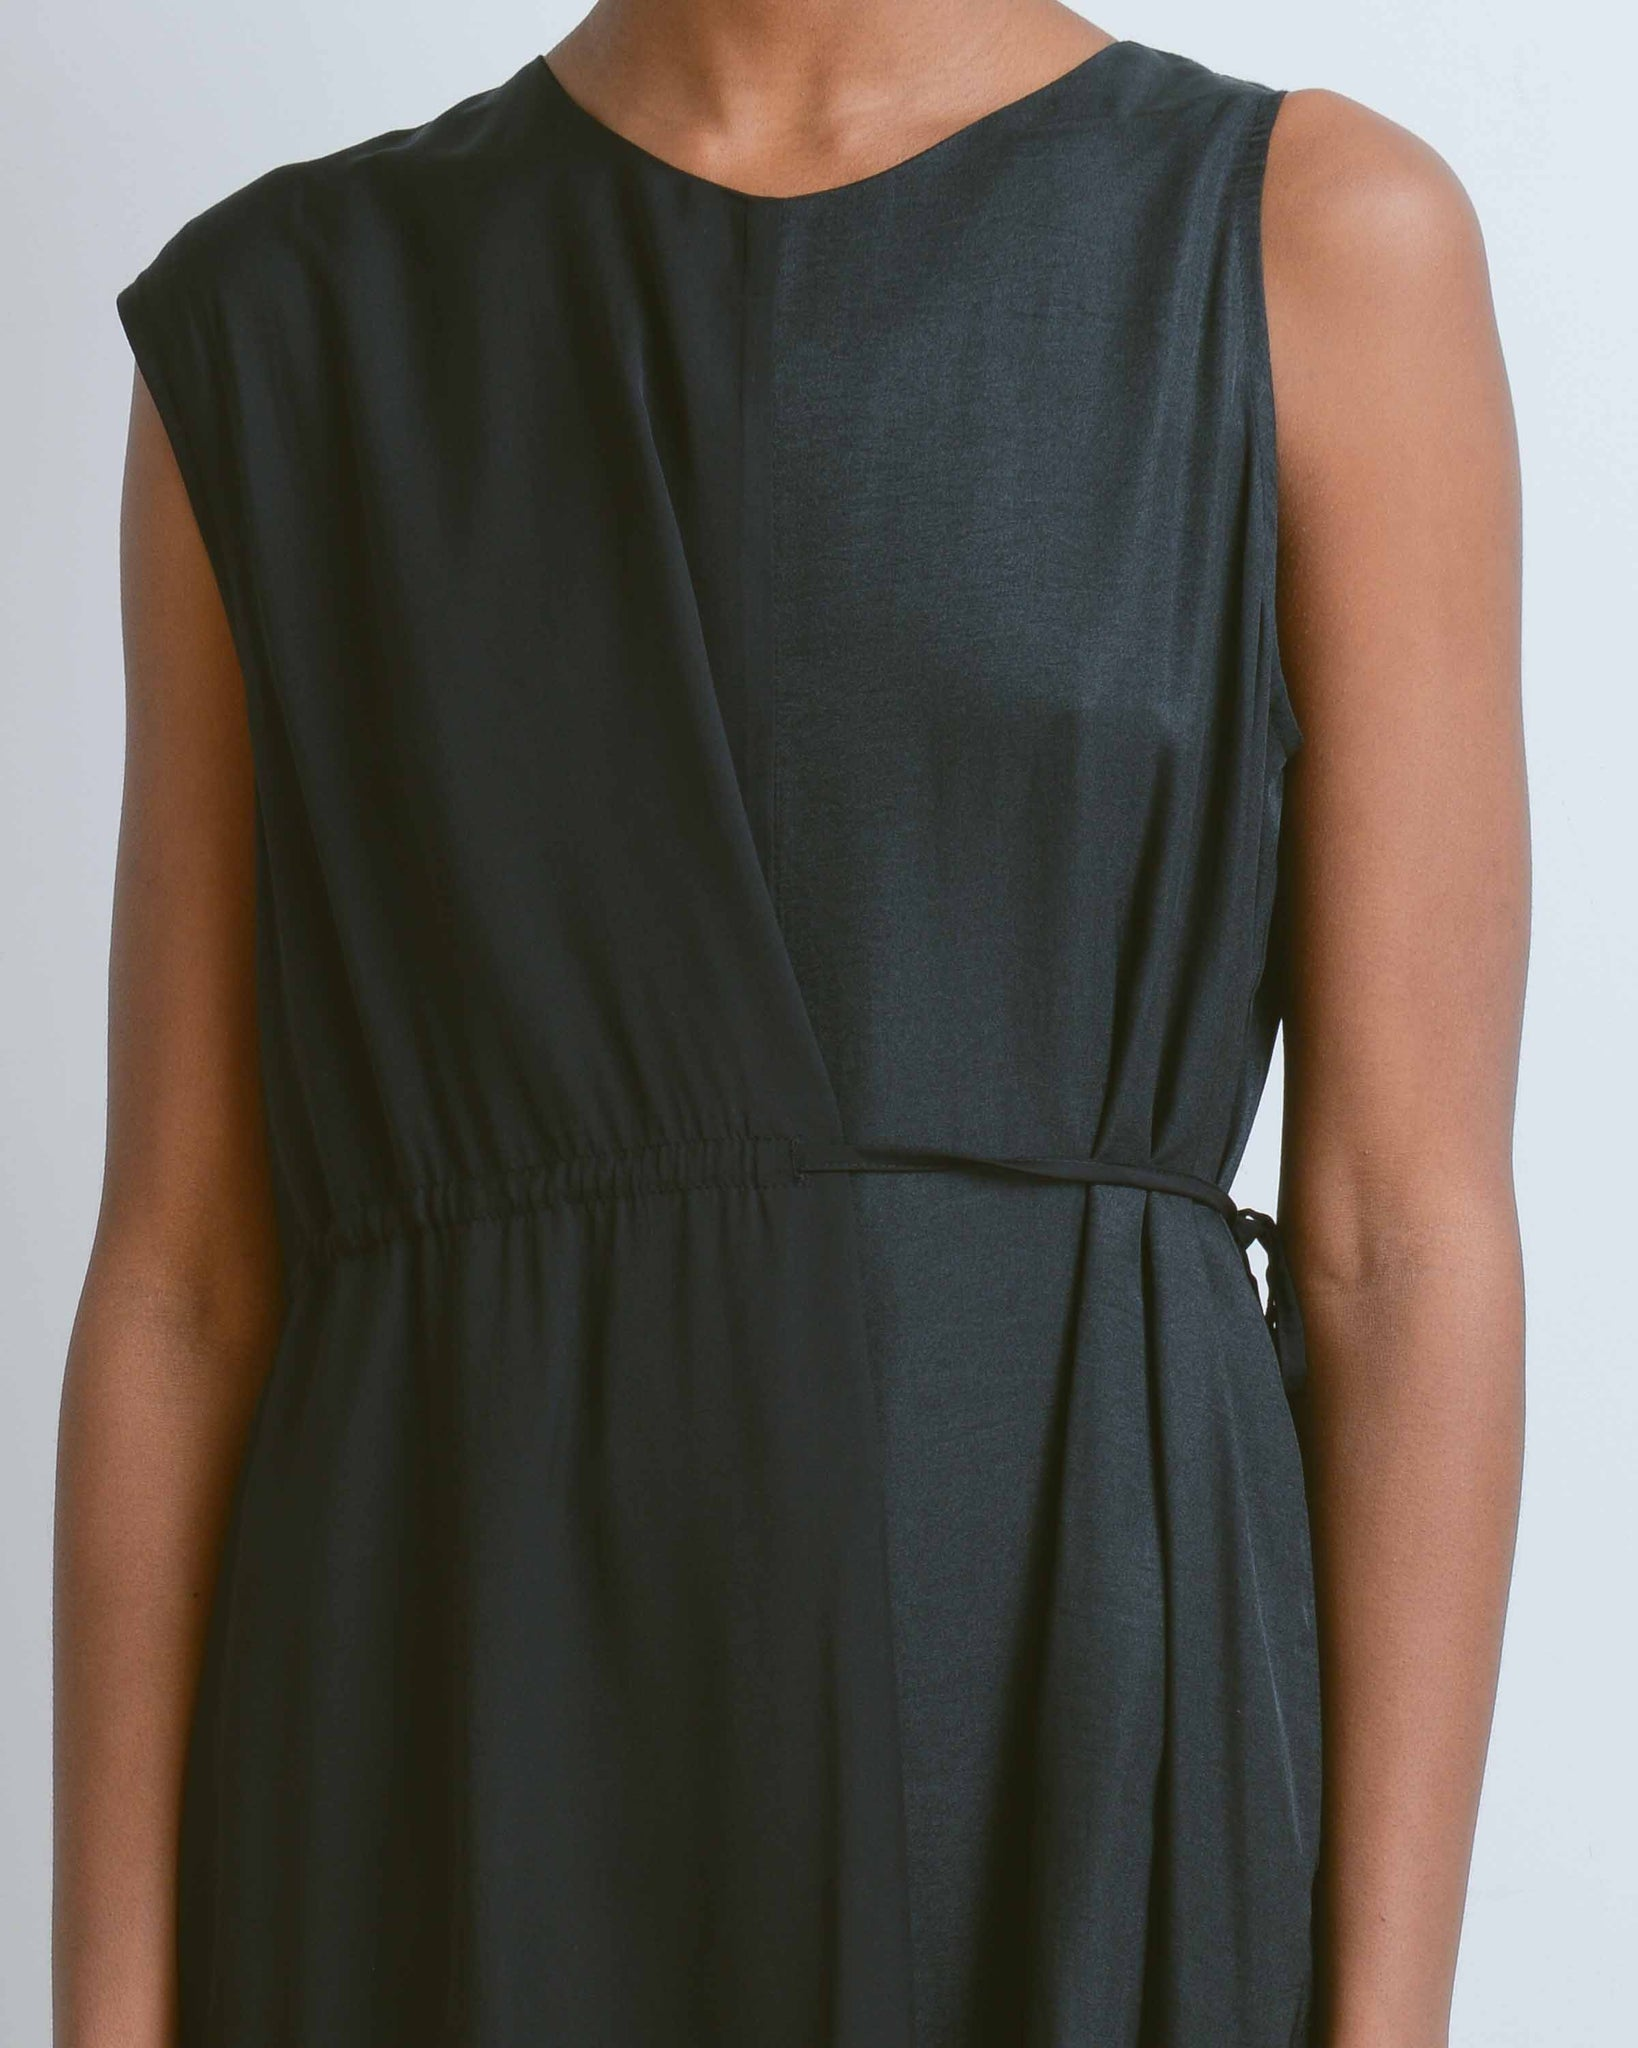 Black Asymmetric Column Dress